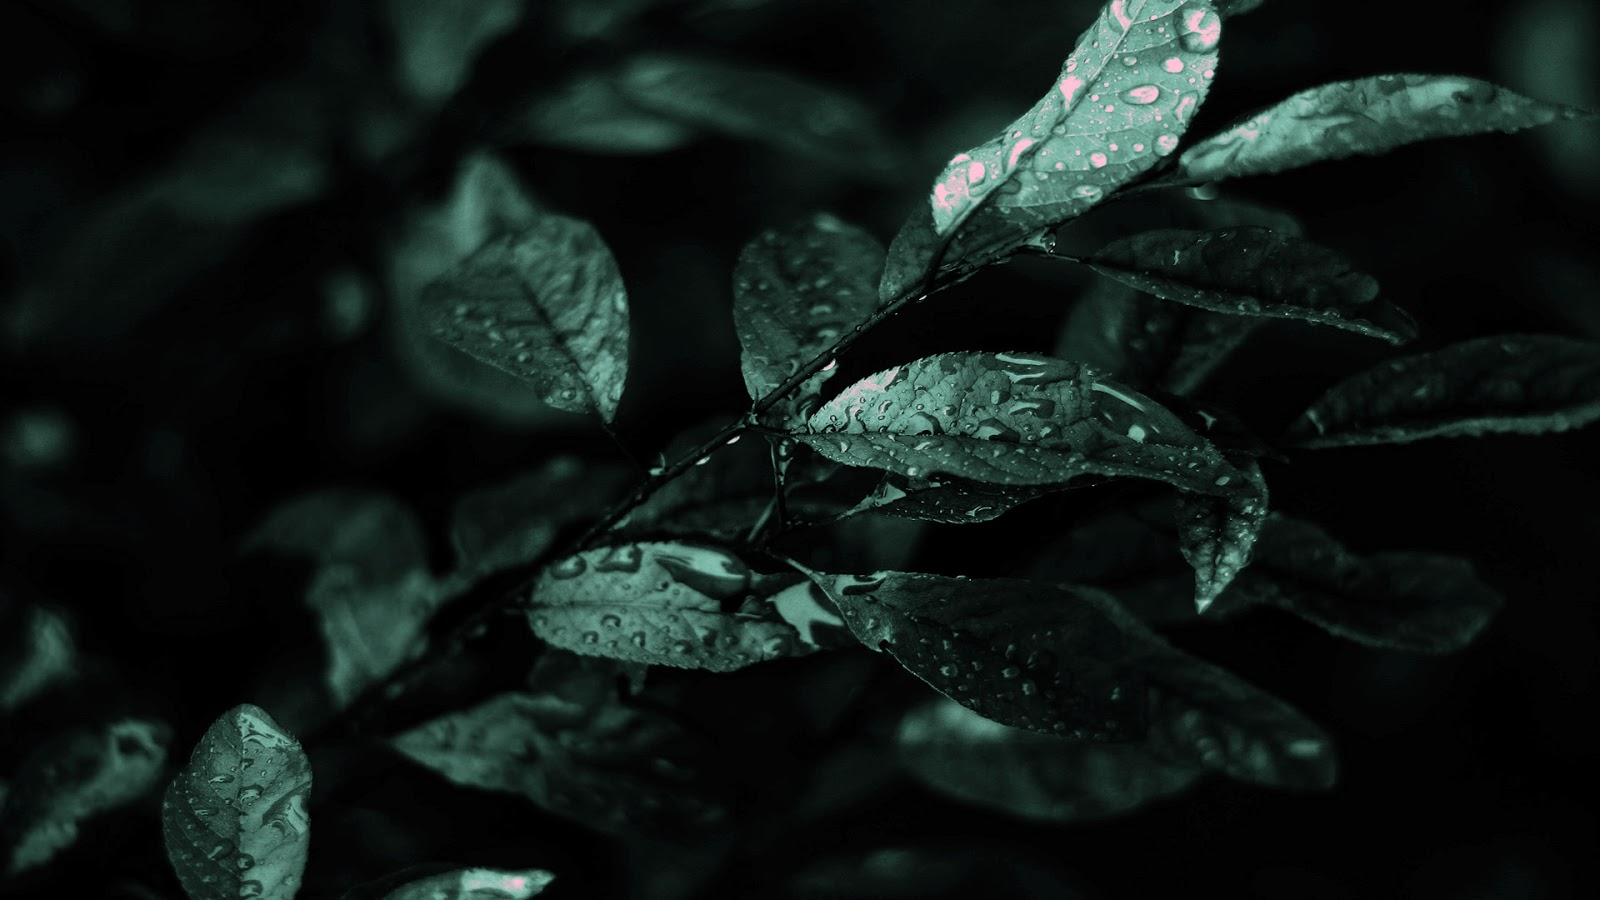 Free Download Abstract Dark Nature Hd Wallpapers 1600x900 For